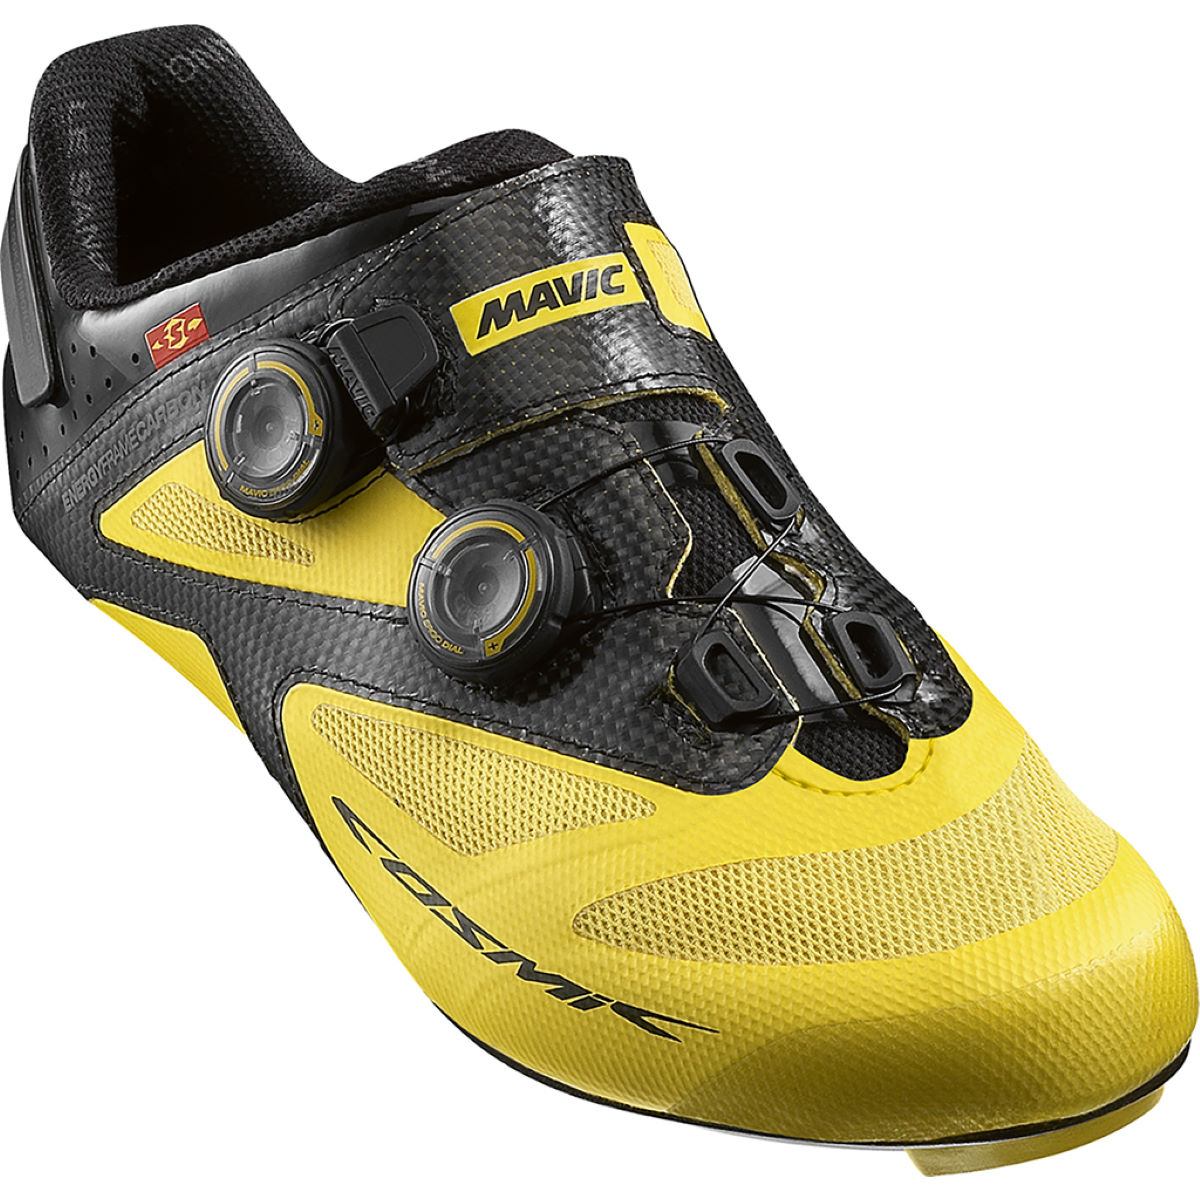 Chaussures Mavic Cosmic Ultimate Maxi Fit - 6 UK Jaune Chaussures de route